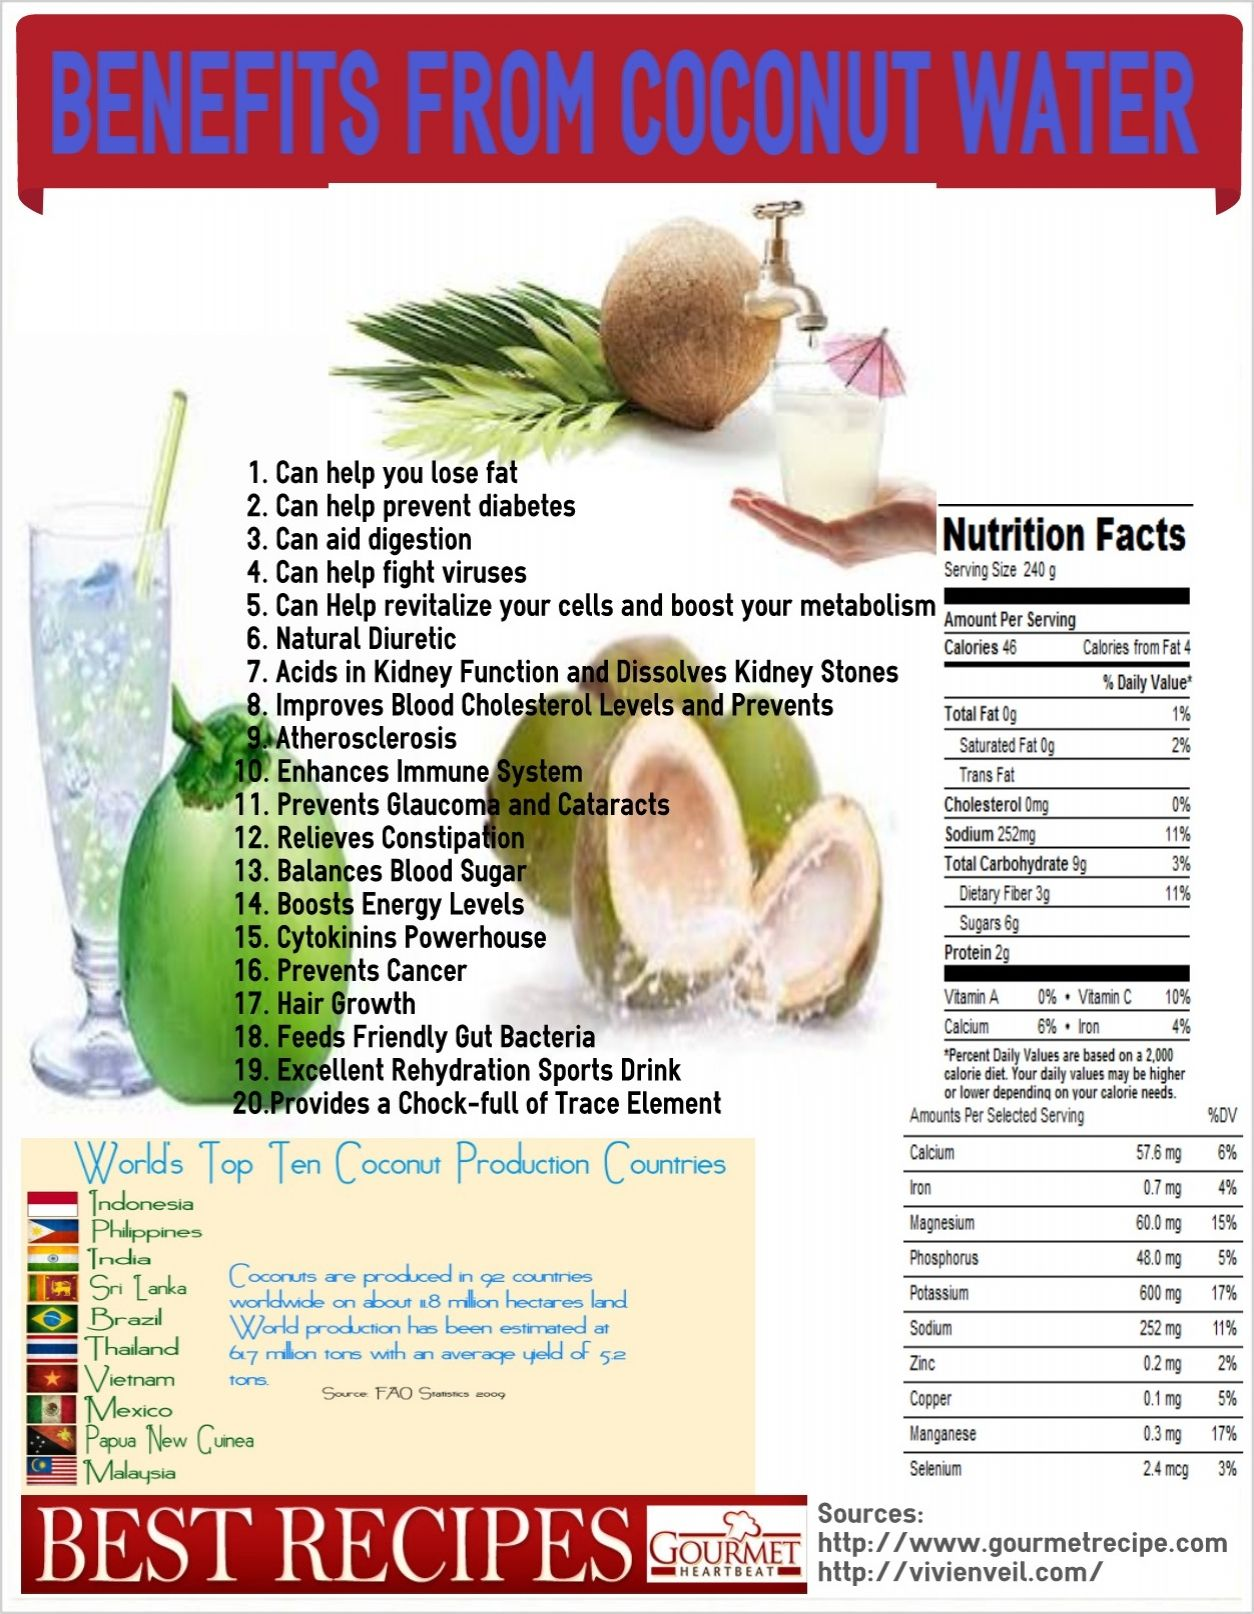 coconut water boasts a stockpile of minerals, natural